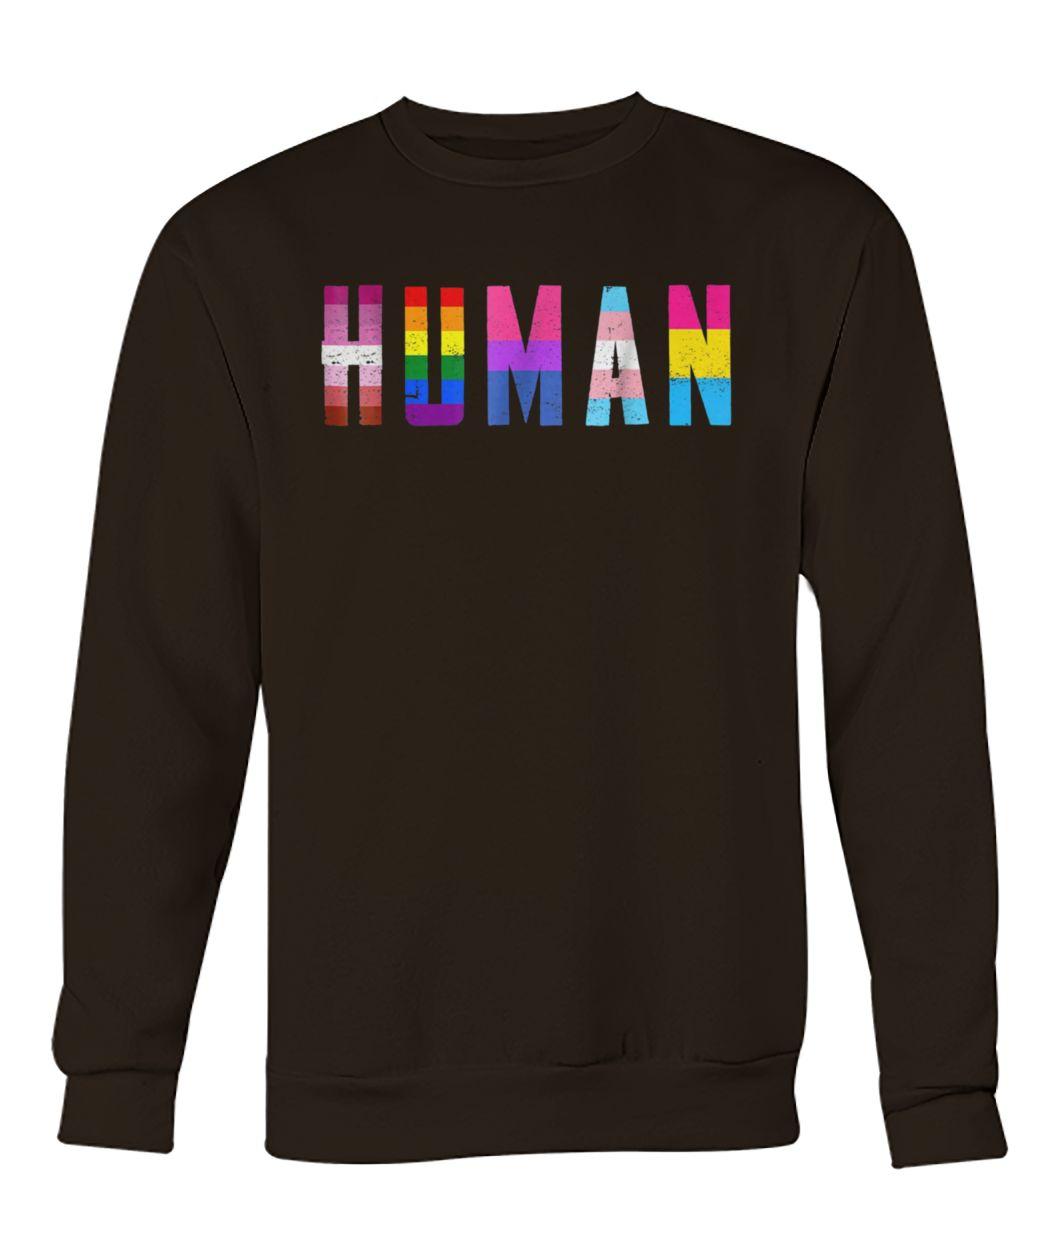 Human flag LGBT gay pride month transgender crew neck sweatshirt